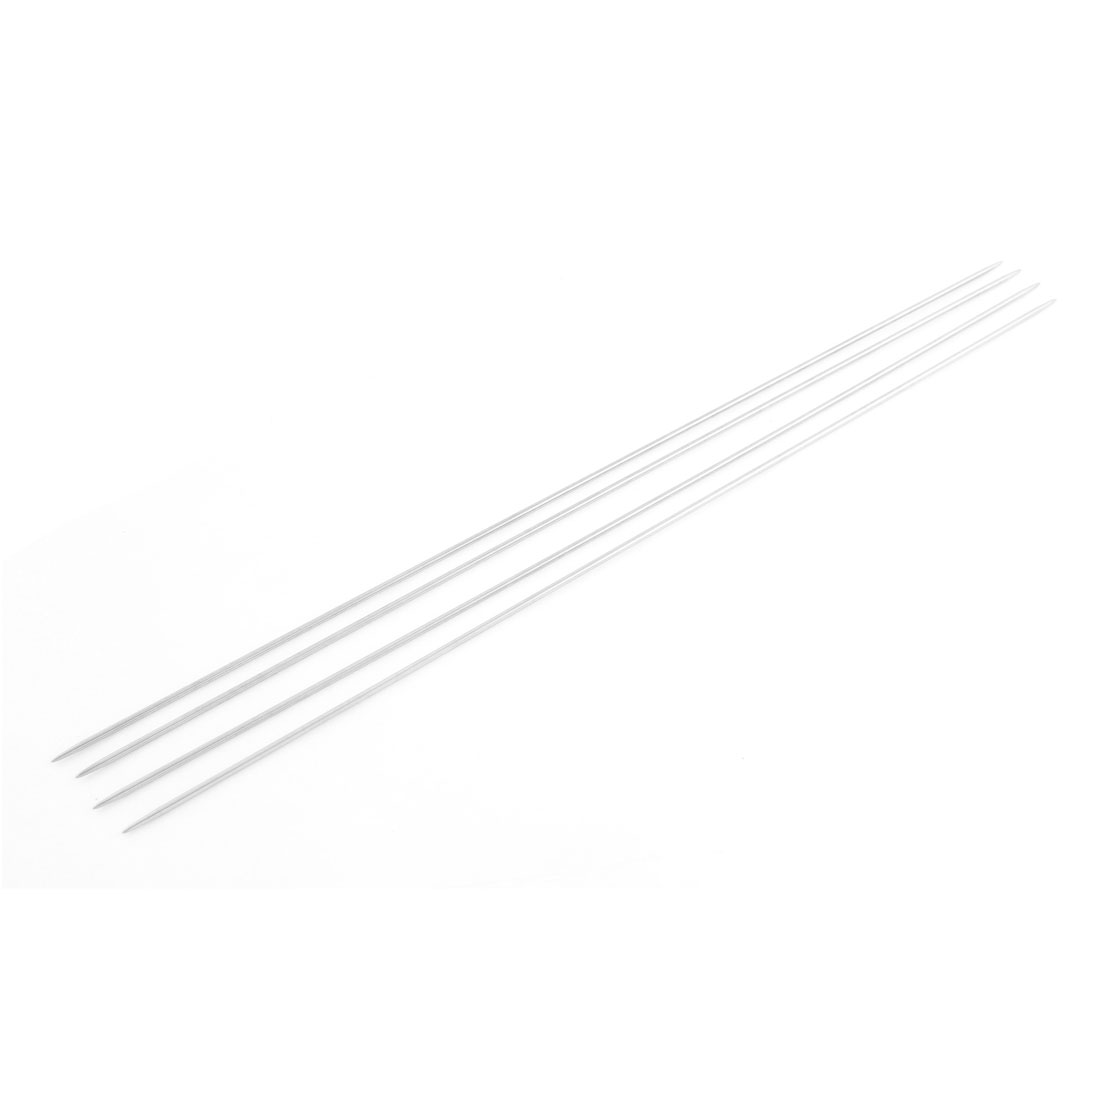 Double Point Stainless Steel Hollow Textile Knitting Needles 4 Pcs Silver Tone